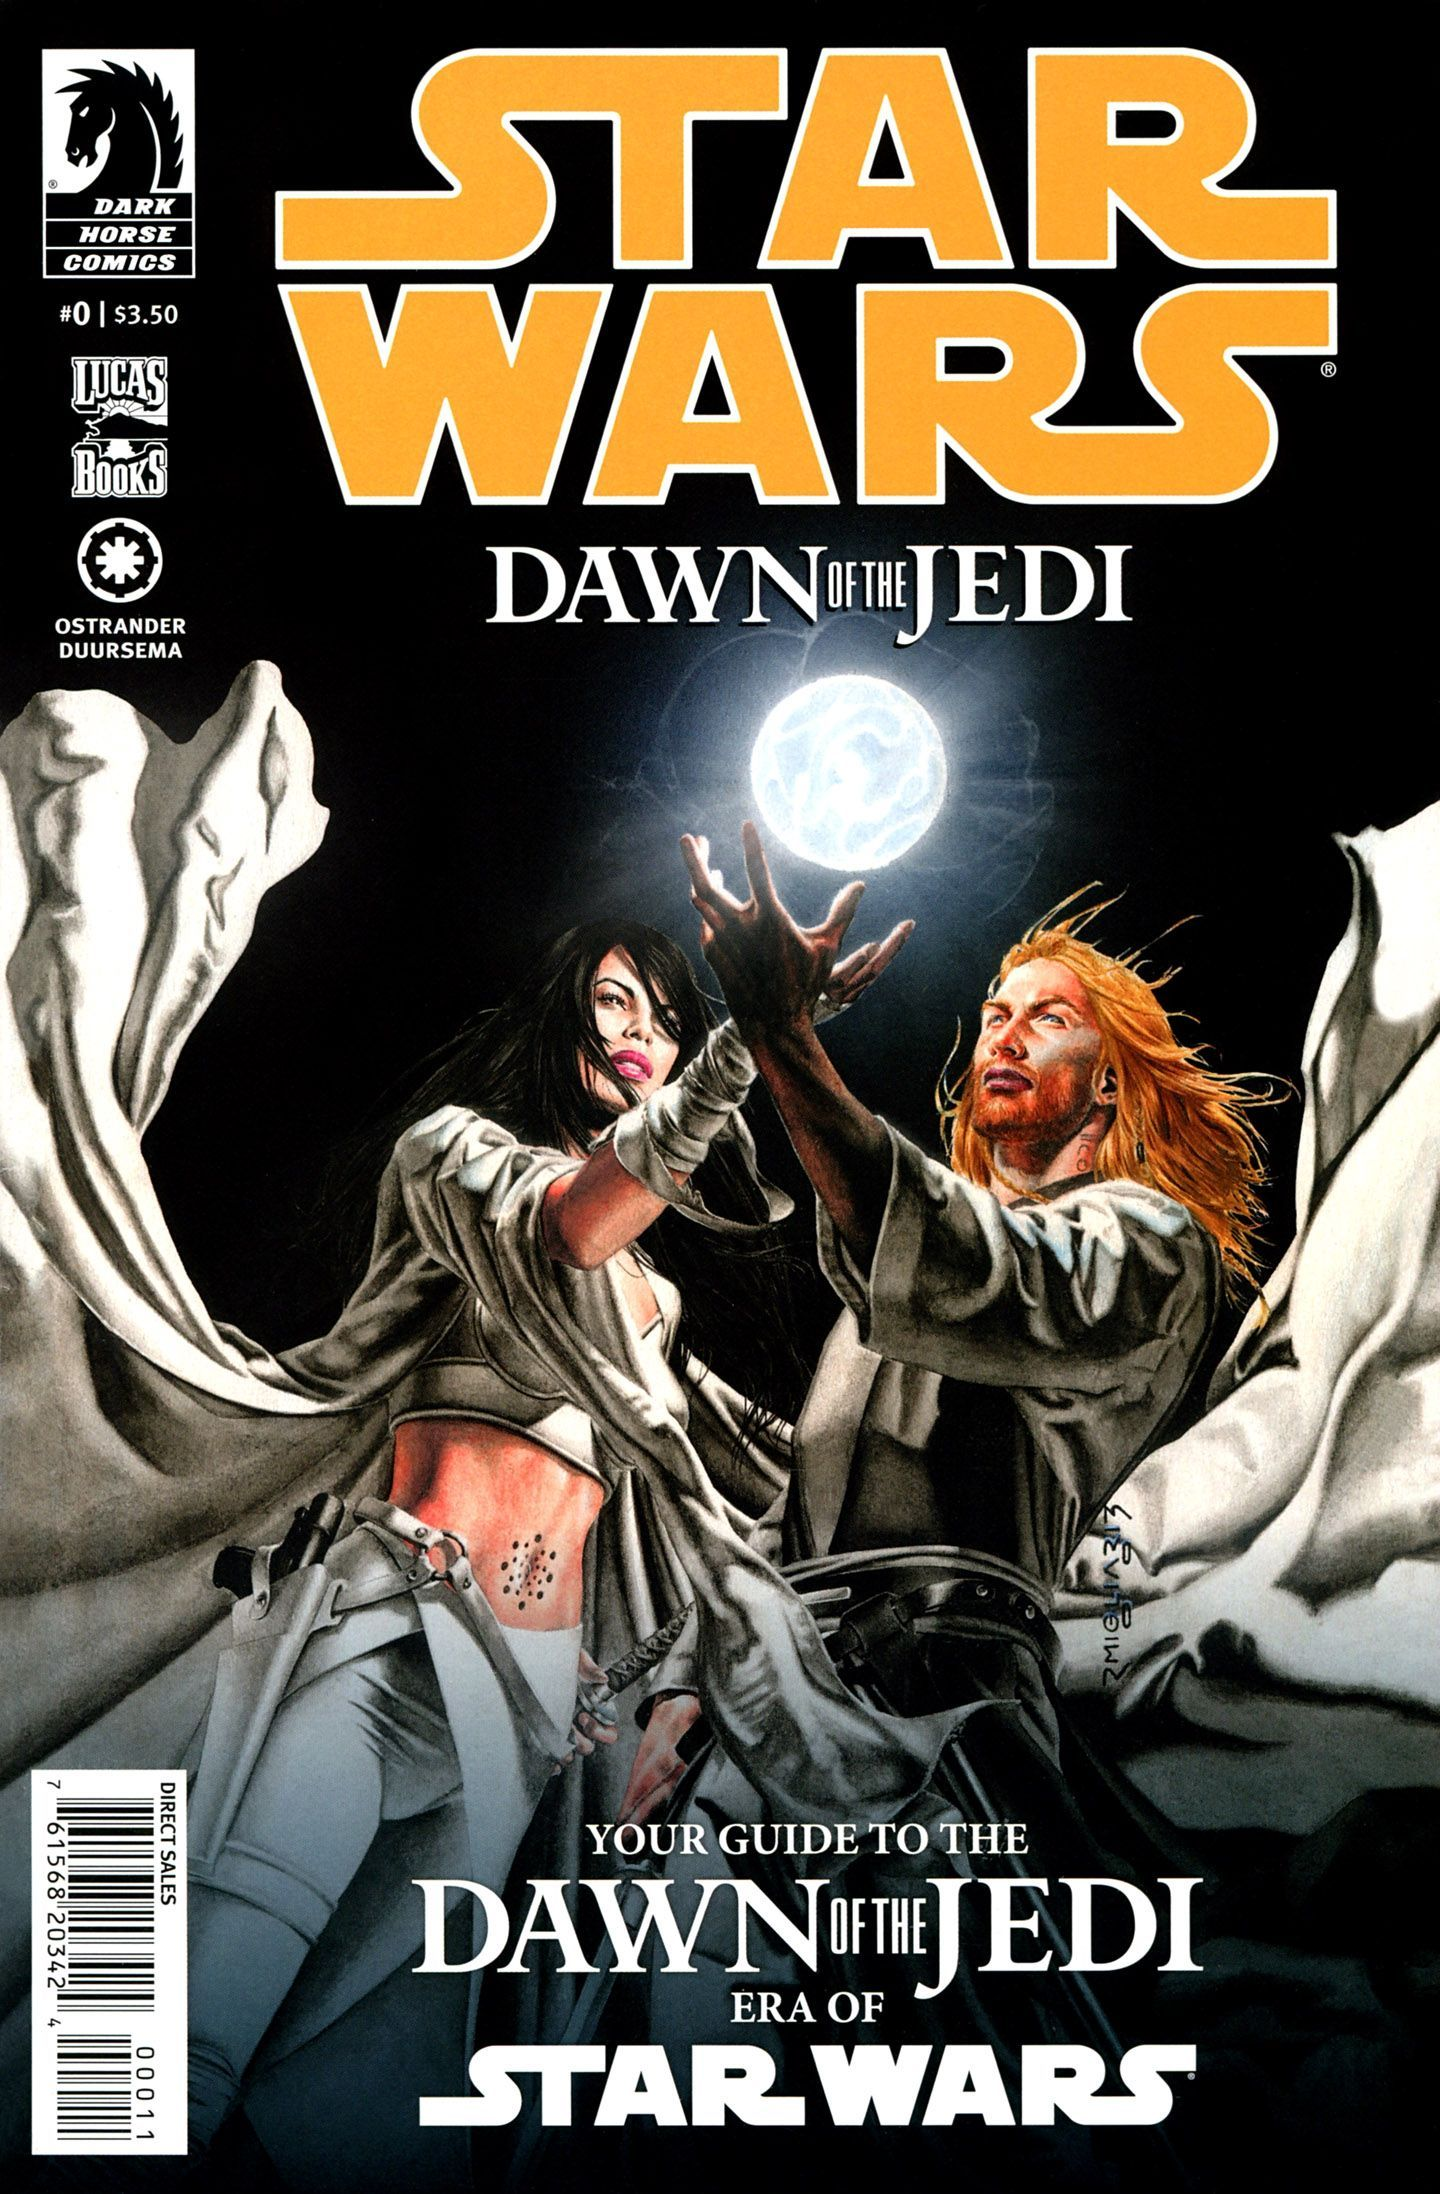 Read Star Wars Dawn Of The Jedi Comic Book Online On Supercomics